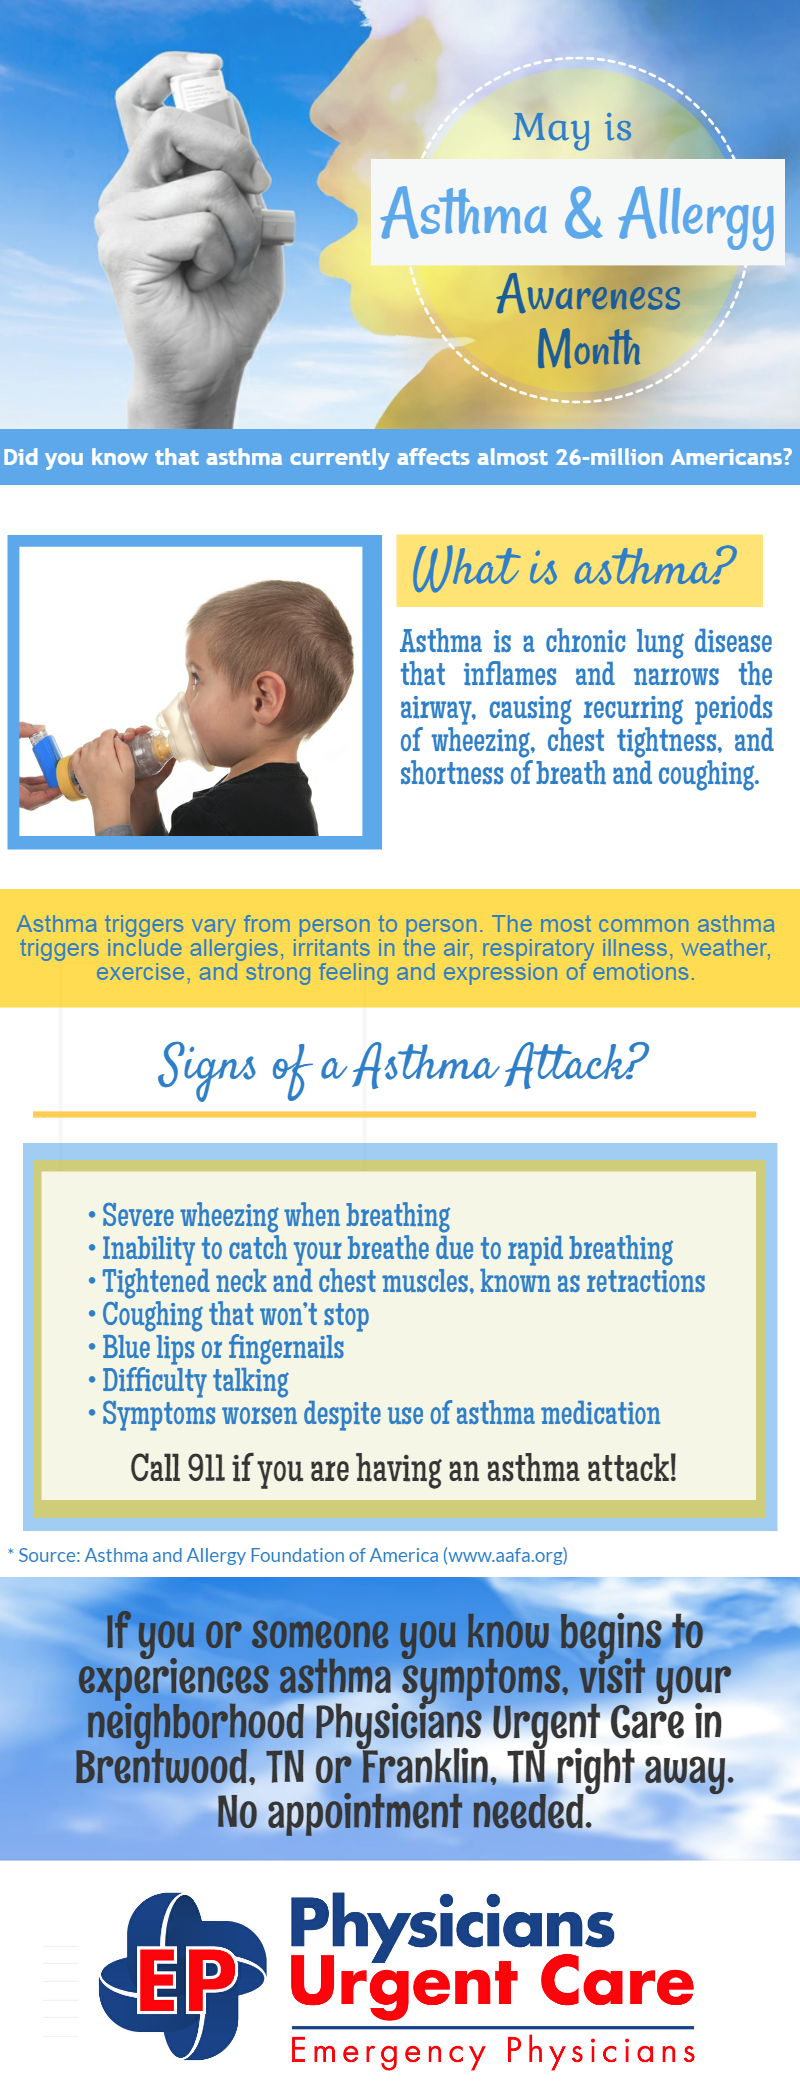 Asthma & Allergy treatment in Brentwood, TN Physicians Urgent Care